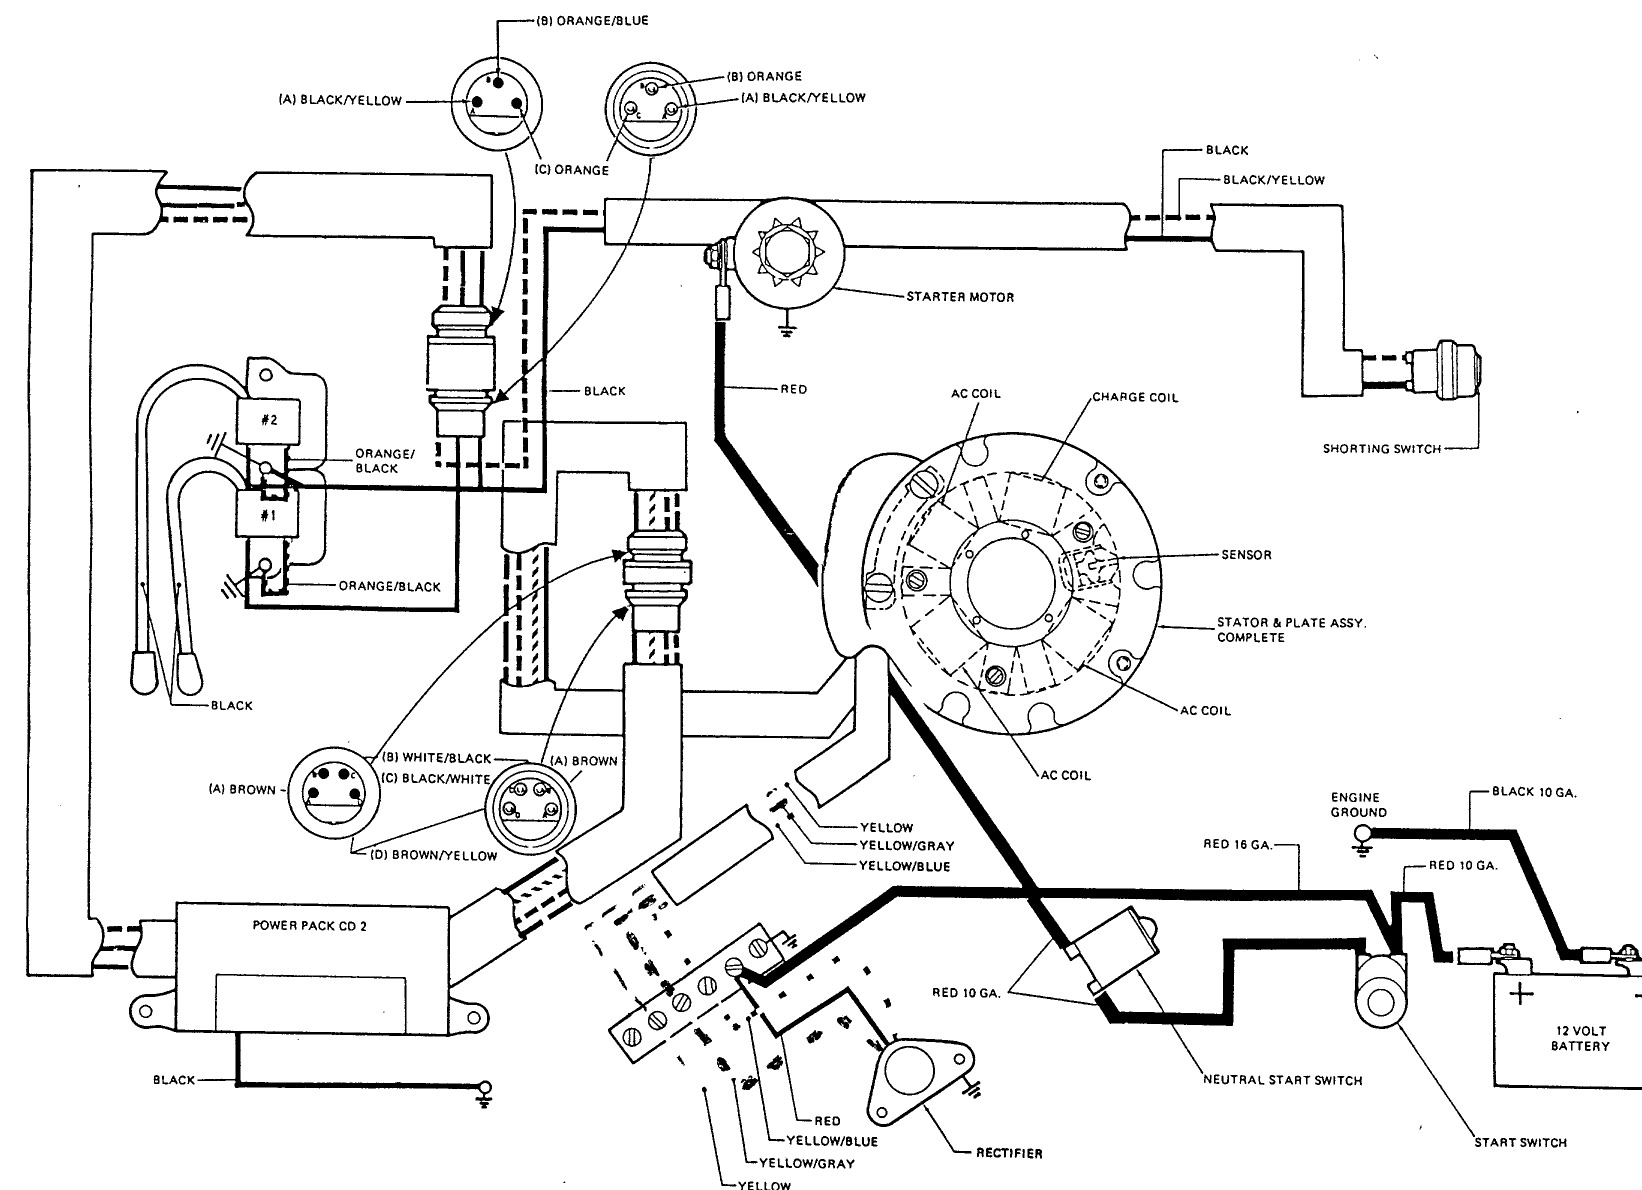 Wiring Diagram For A 88 8 Hp Motor mercury outboard ... on hp panel diagram, hp networking diagram, hp computer diagram, hp parts diagram, hp piping diagram, hp battery diagram, hp hardware diagram, hp power supply diagram, hp cable diagram,